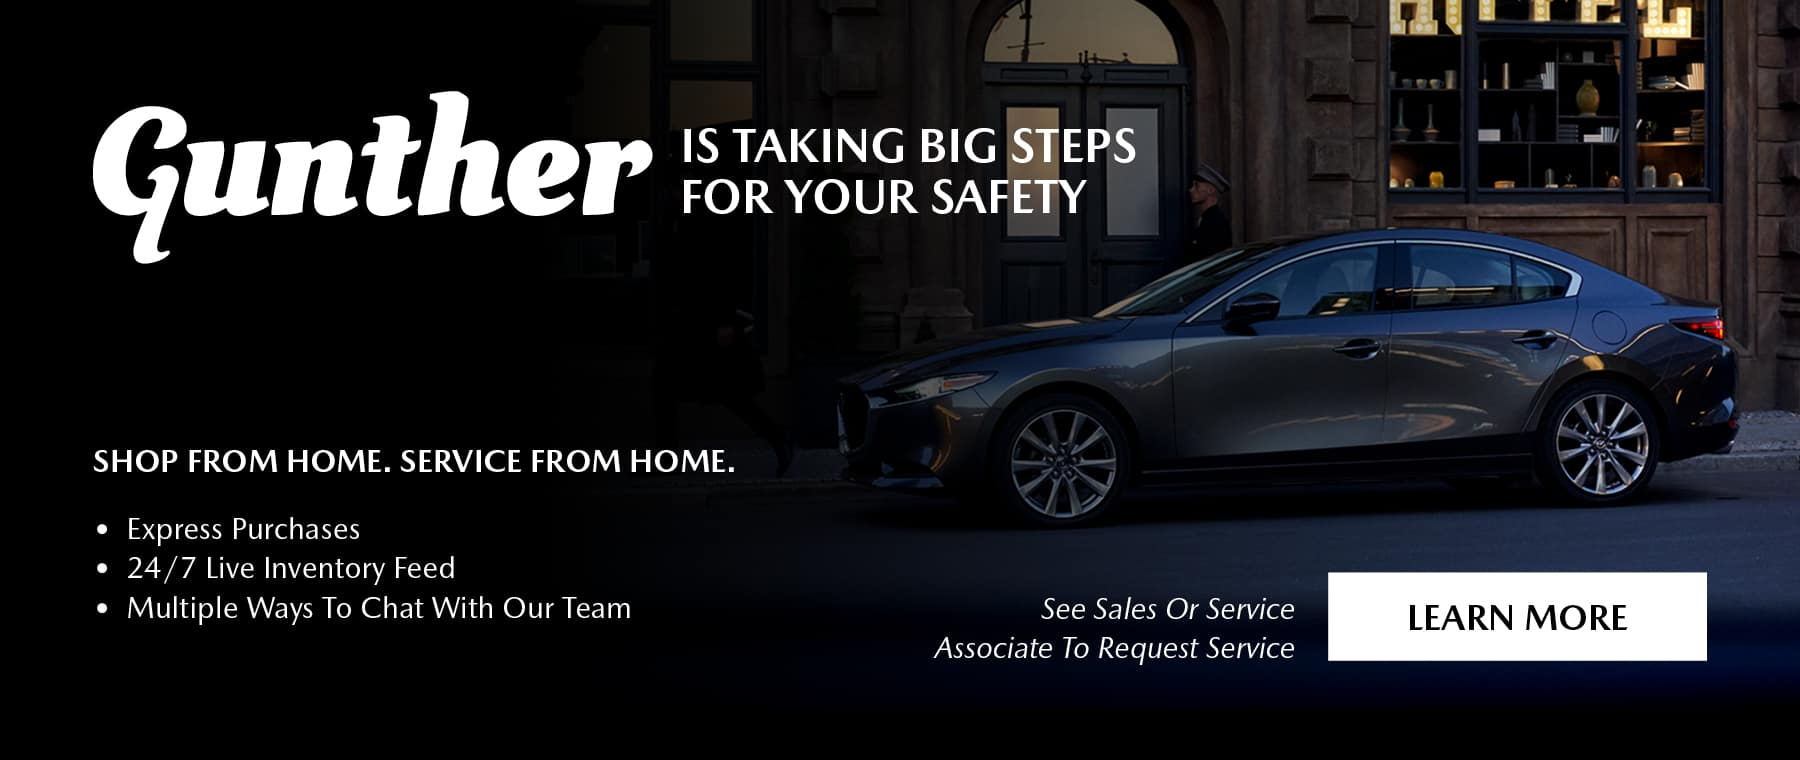 Gunther Is Taking Big Steps For Your Safety. Shop From Home. Service From Home. Express Purchases, 24/7 Live Inventory Feed, Multiple Ways To Chat With Our Team. See Sales Or Service Associate To Request Service.